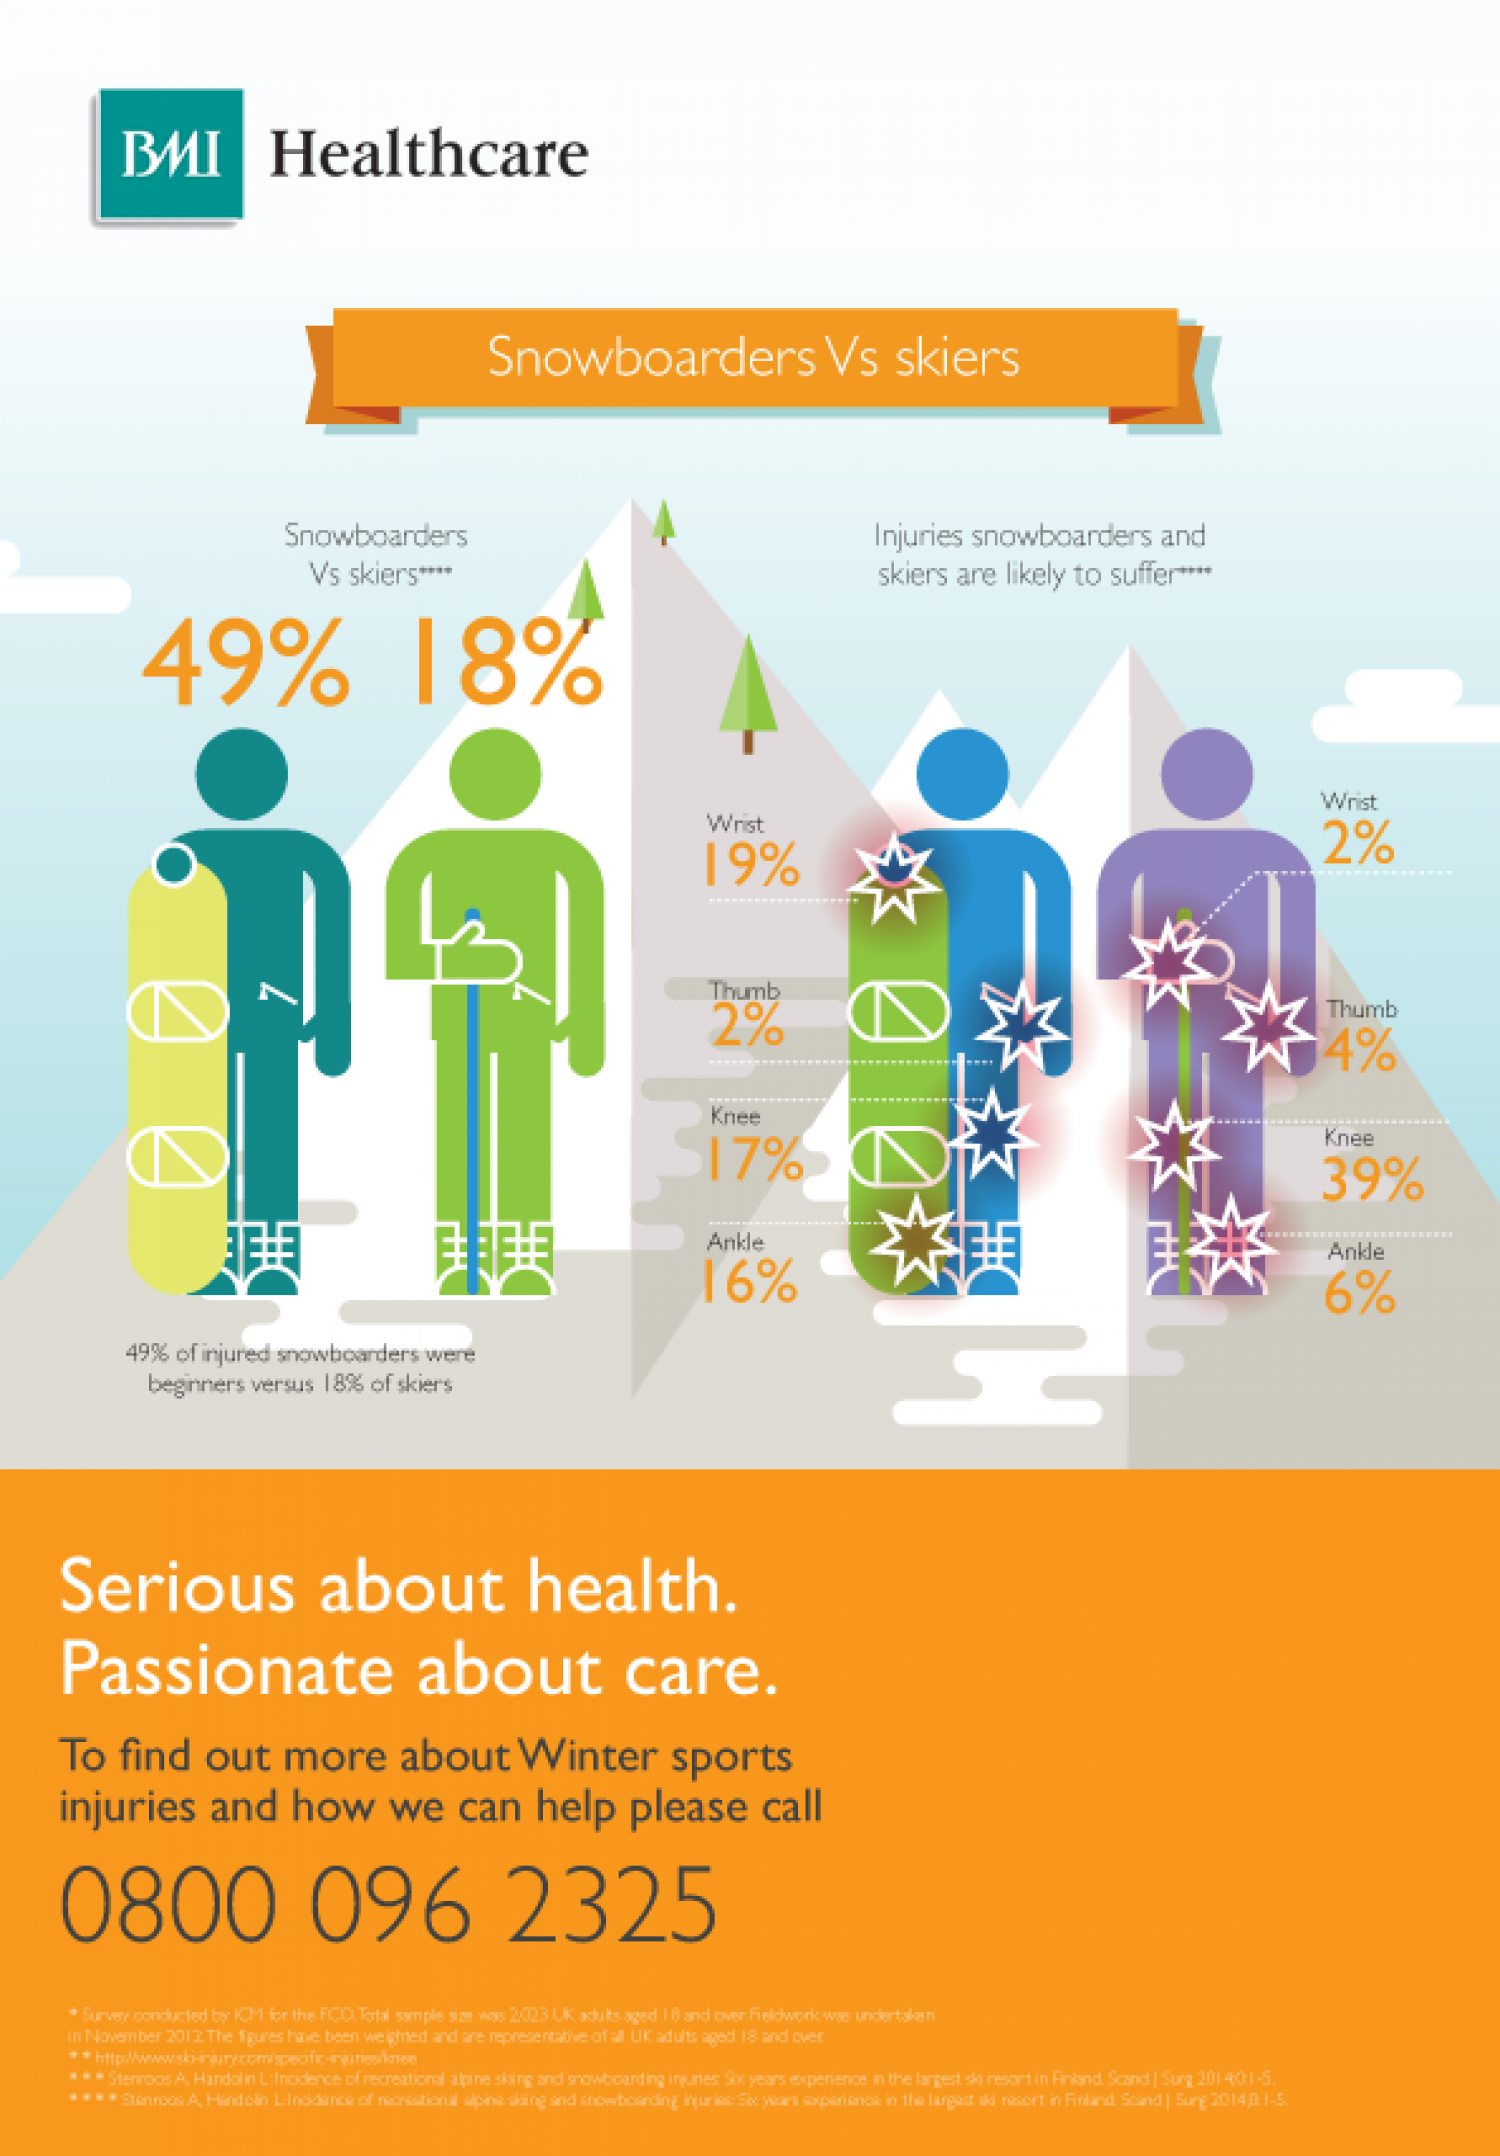 Snowboarders Vs. Skiers - Common Injuries Infographic